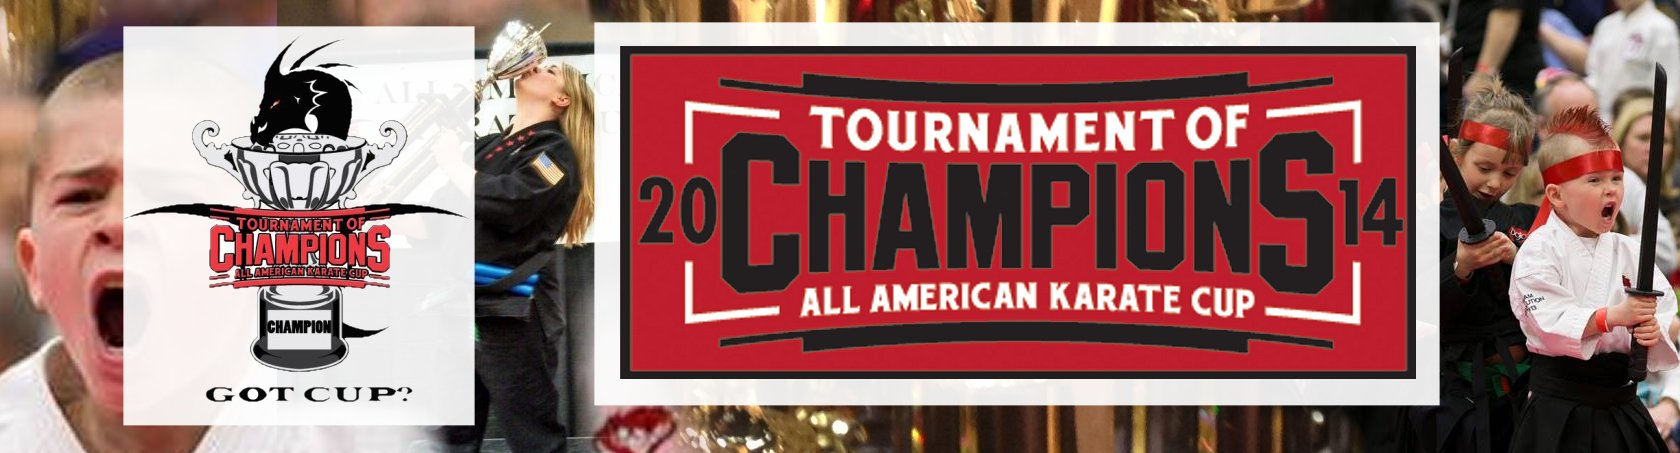 Tournament of Champions All American Karate Cup